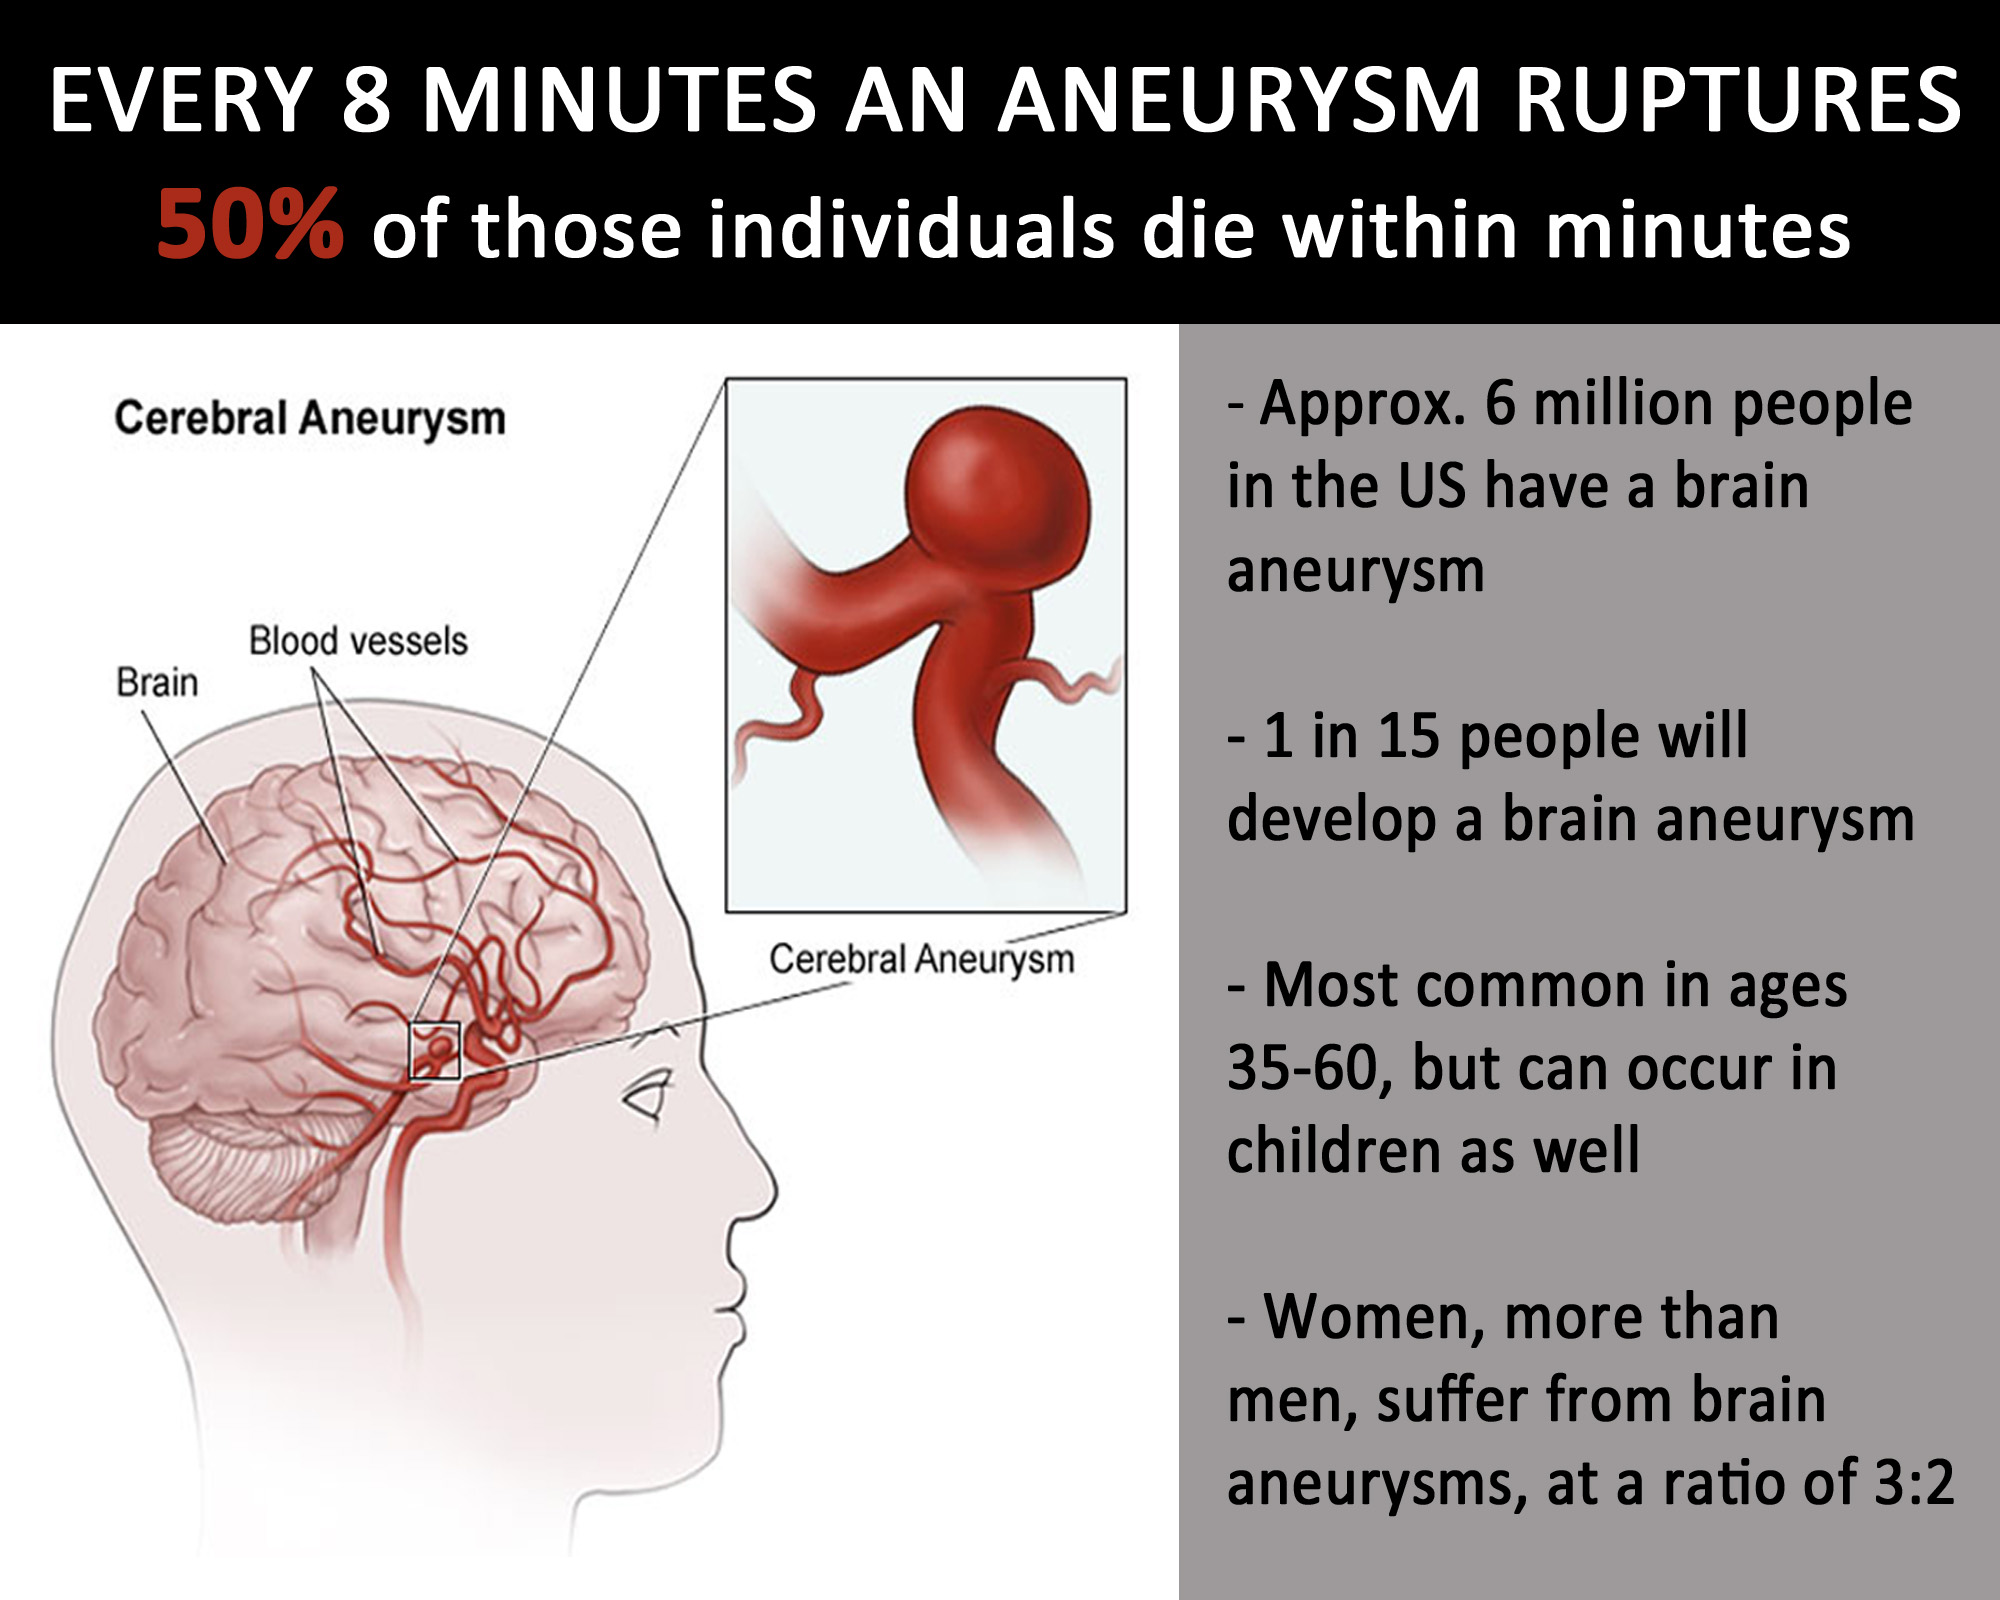 brain aneurysm in young people, Cephalic Vein